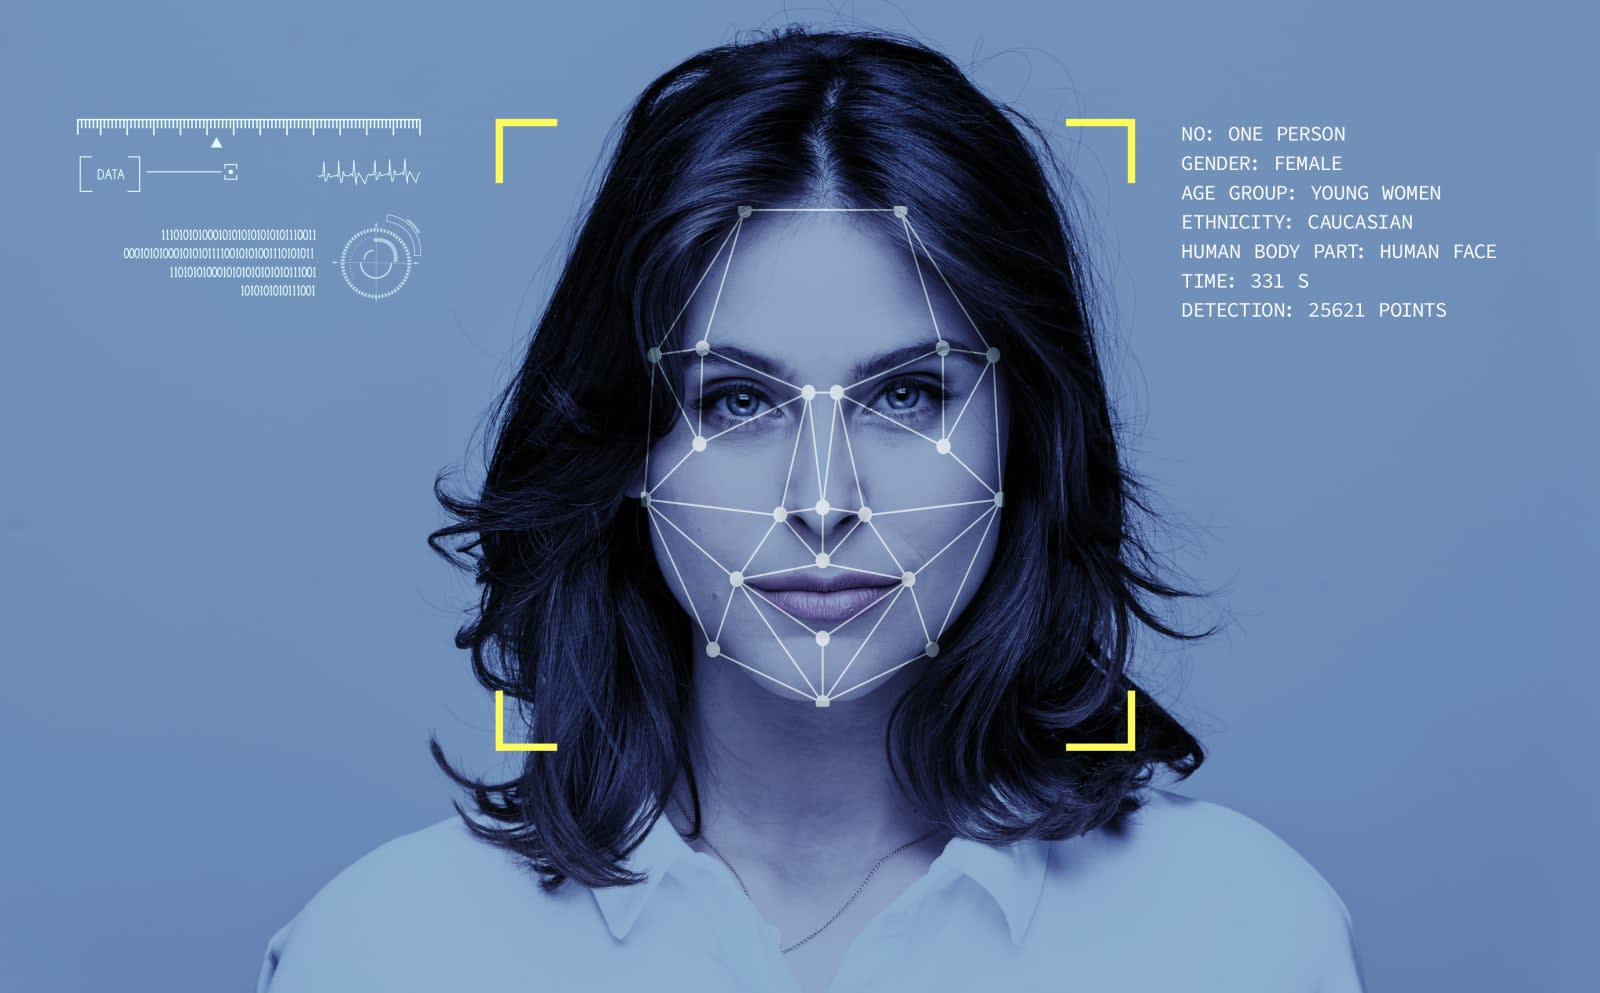 Microsoft discreetly wiped its massive facial recognition database